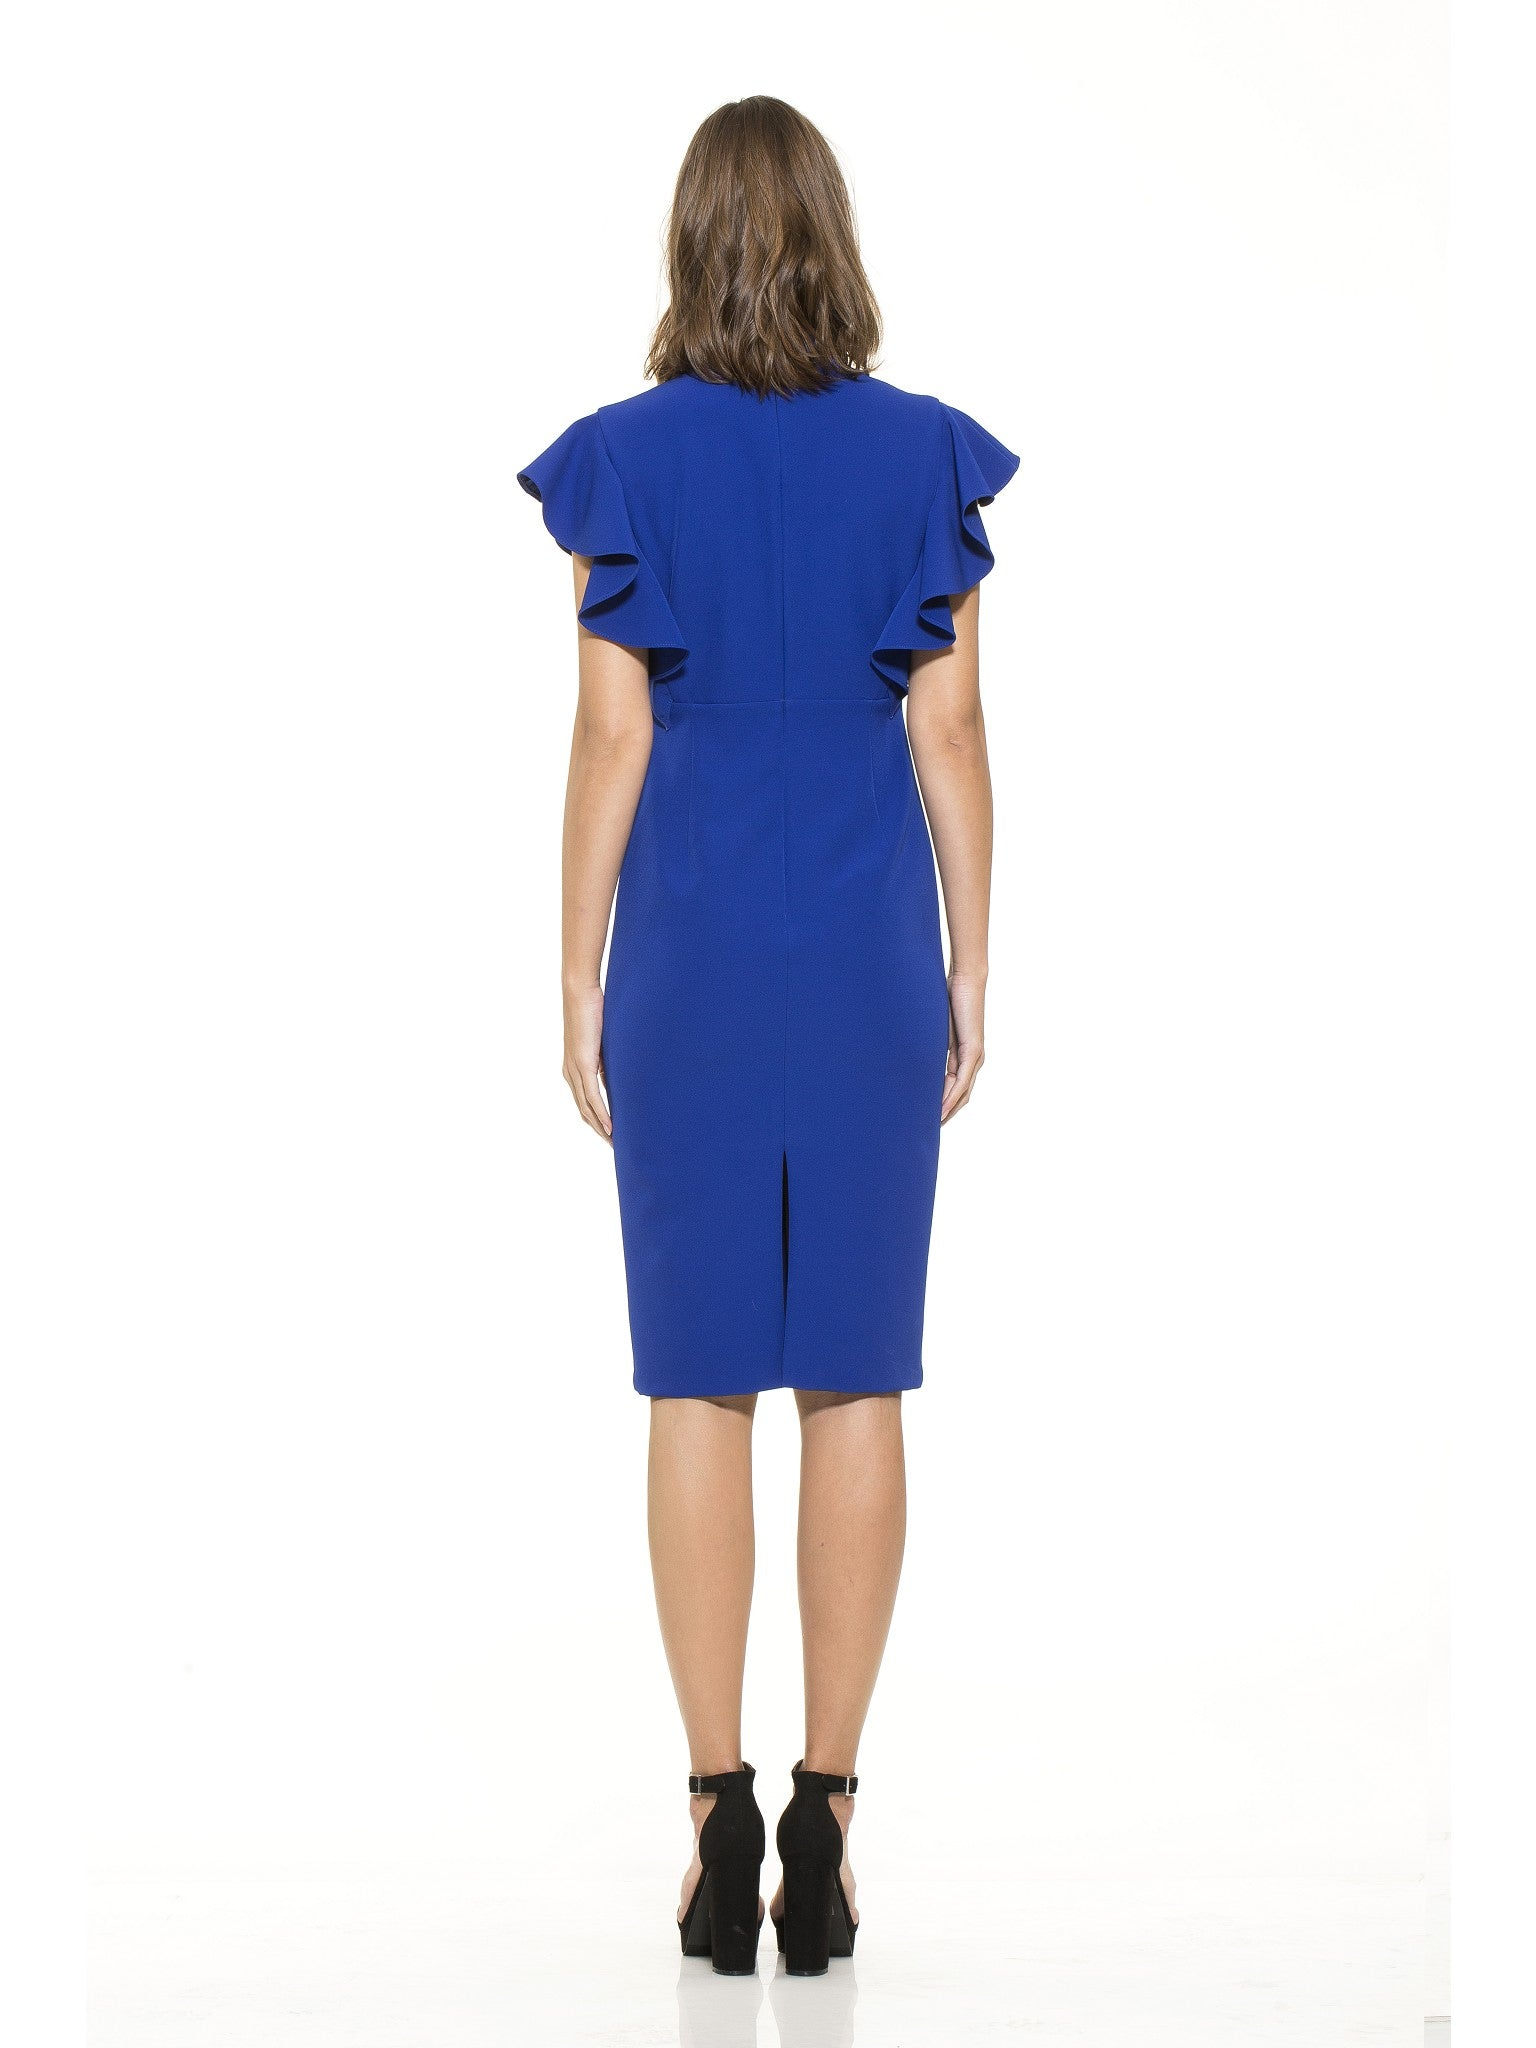 Ruffle Sleeve V-Neck Sheath